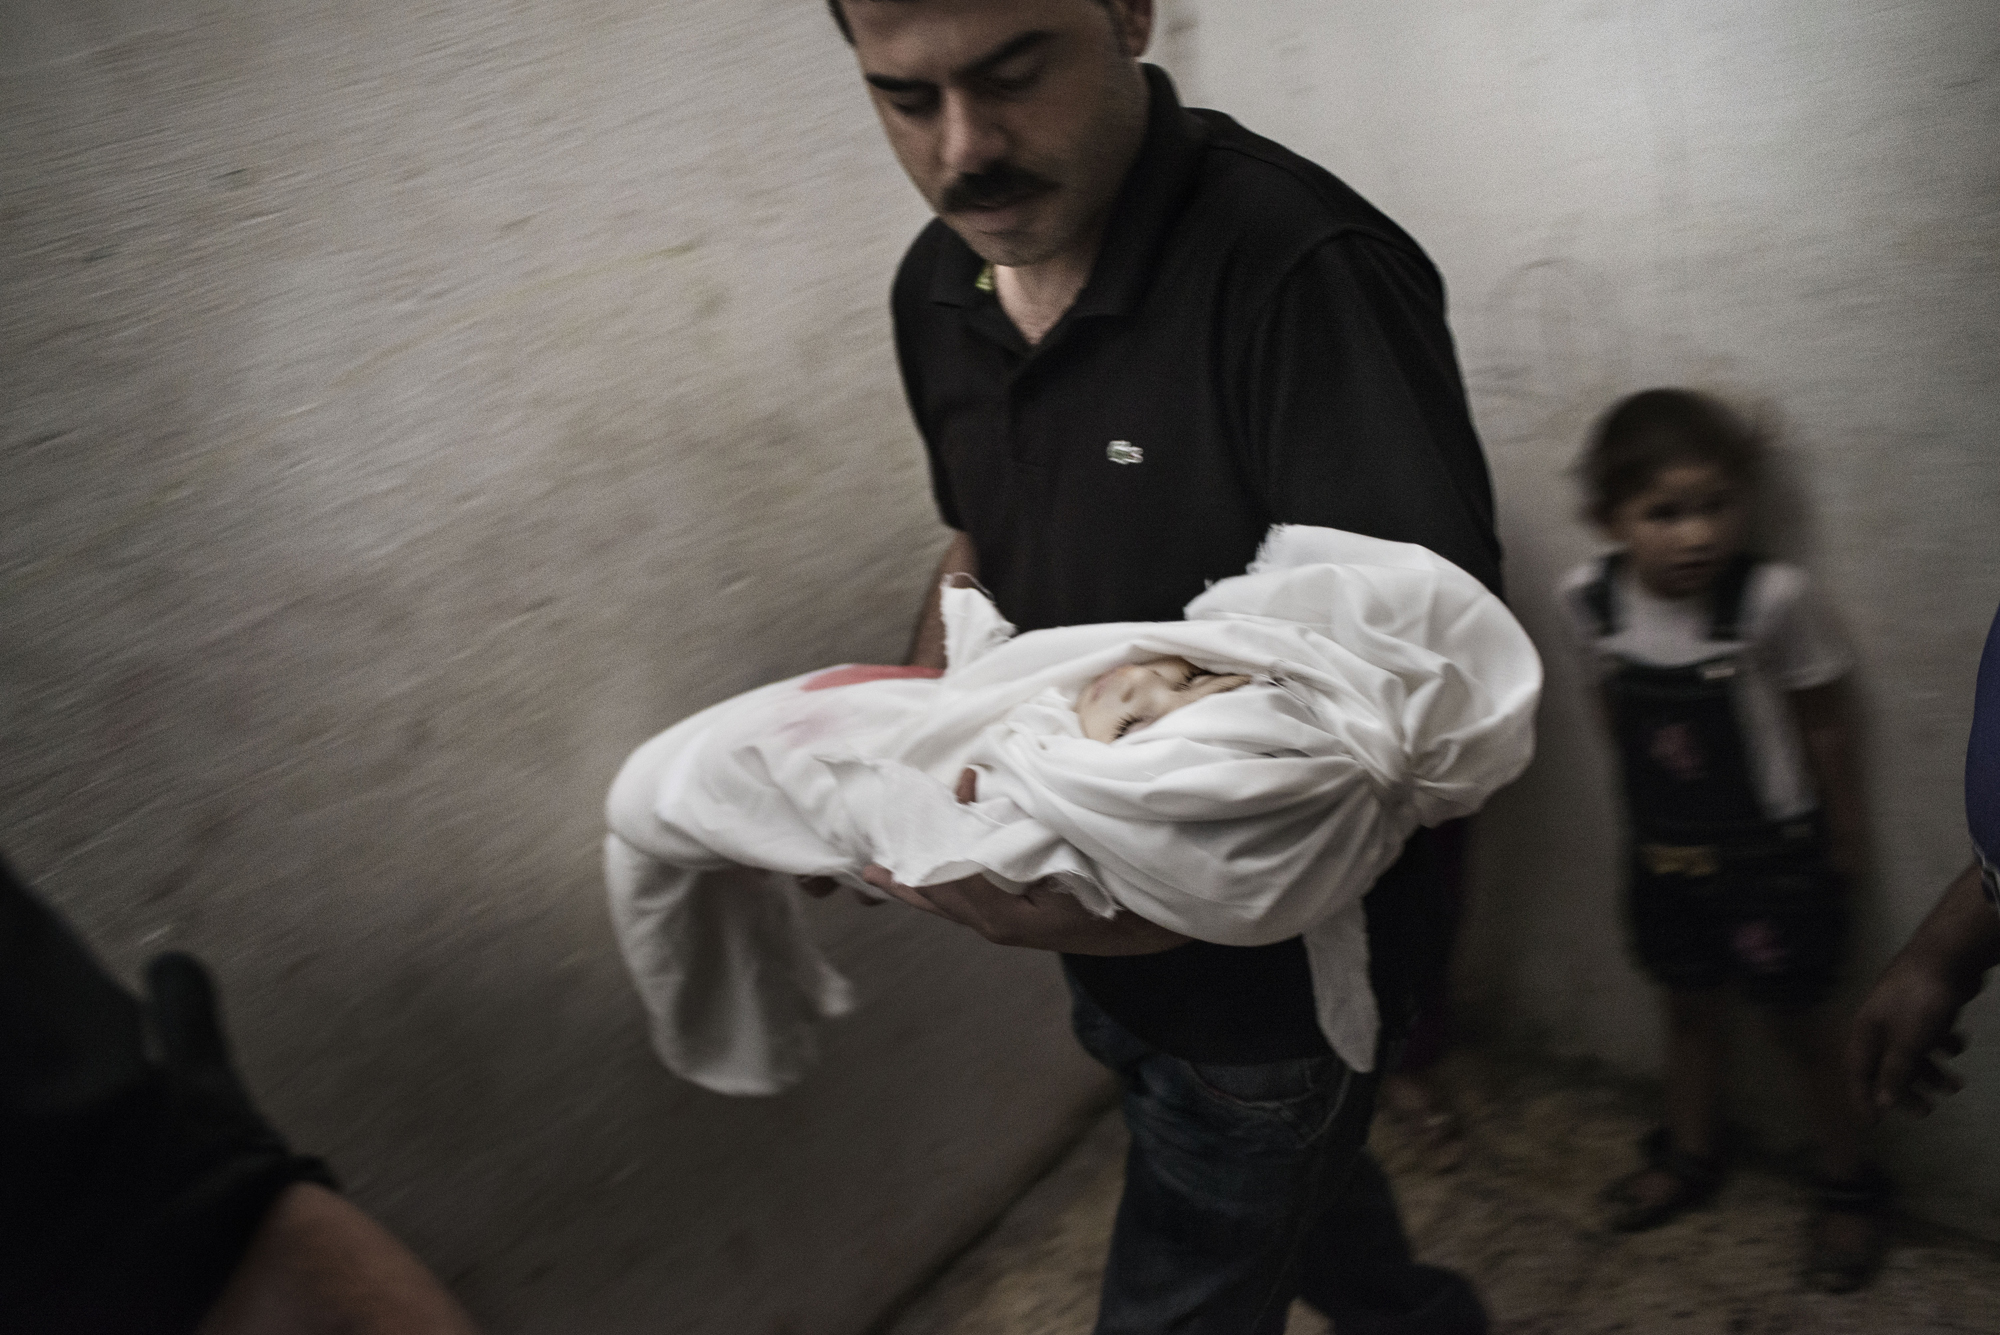 The father of 18-month-old Razel Netzlream, who was fatally wounded during an air strike, carries her body right before her funeral in Rafah, Gaza Strip, on July 18, 2014